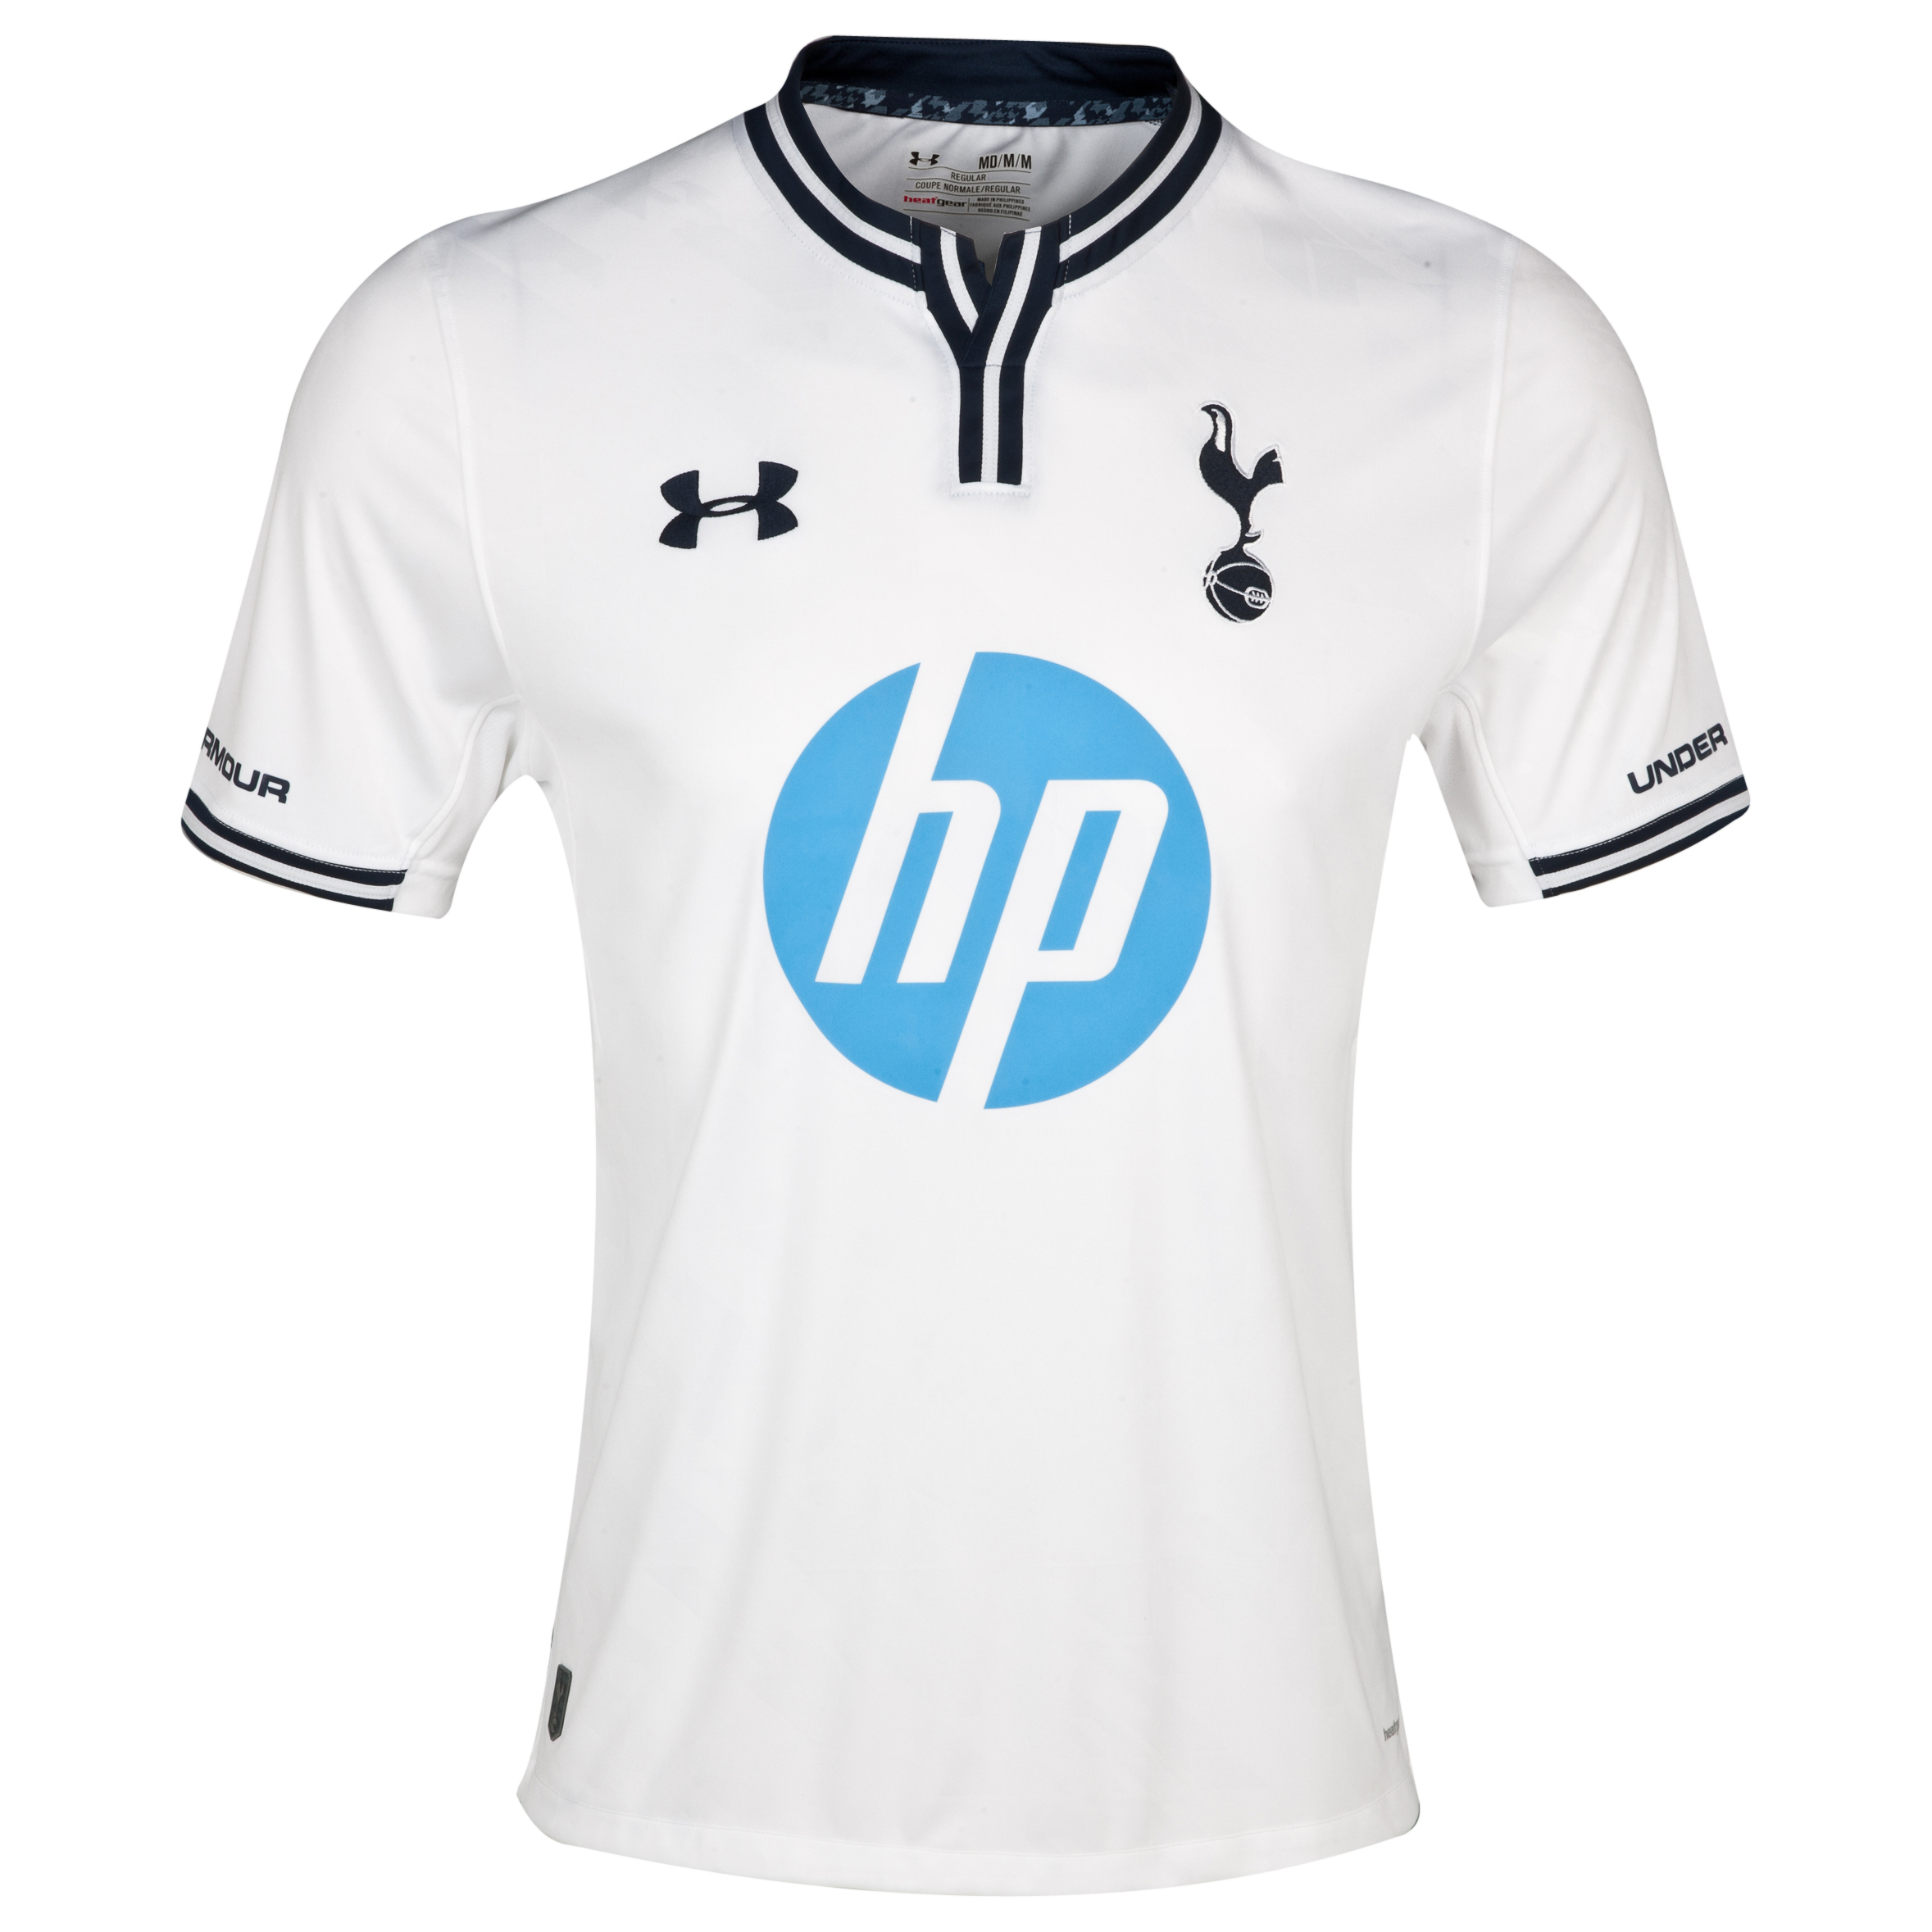 Buy Tottenham Hotspur Home Kit 2013/14 Youths